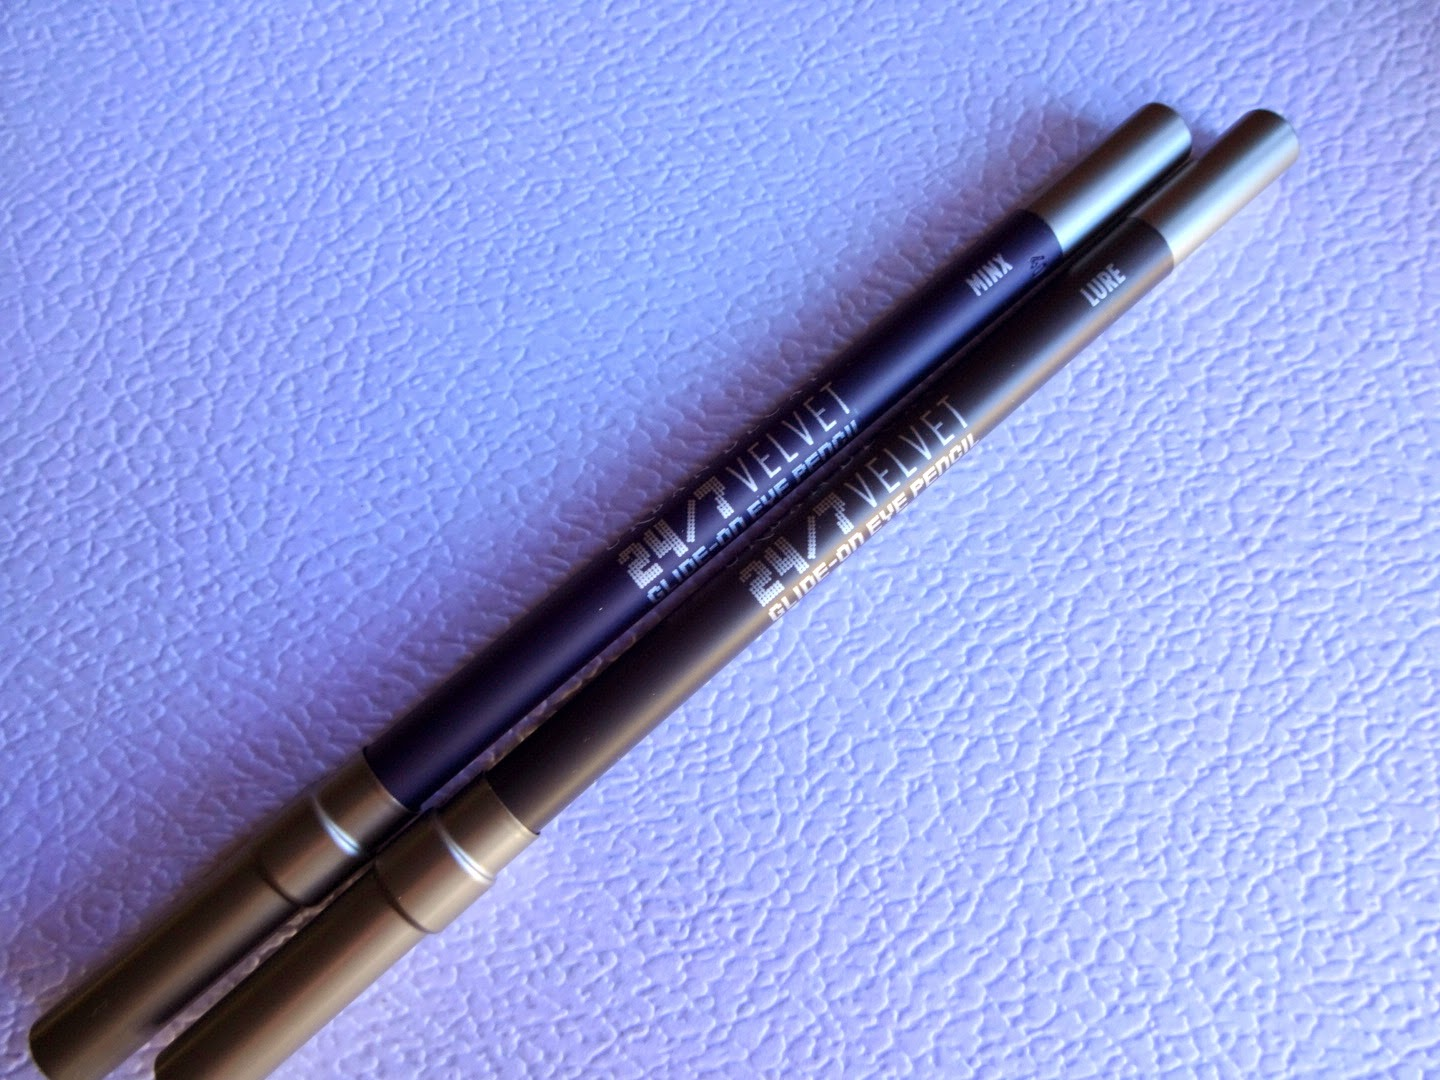 urban decay 24/7 velvet eye pencil, prodotti preferiti make up, matita occhi nera, matita occhi velluto